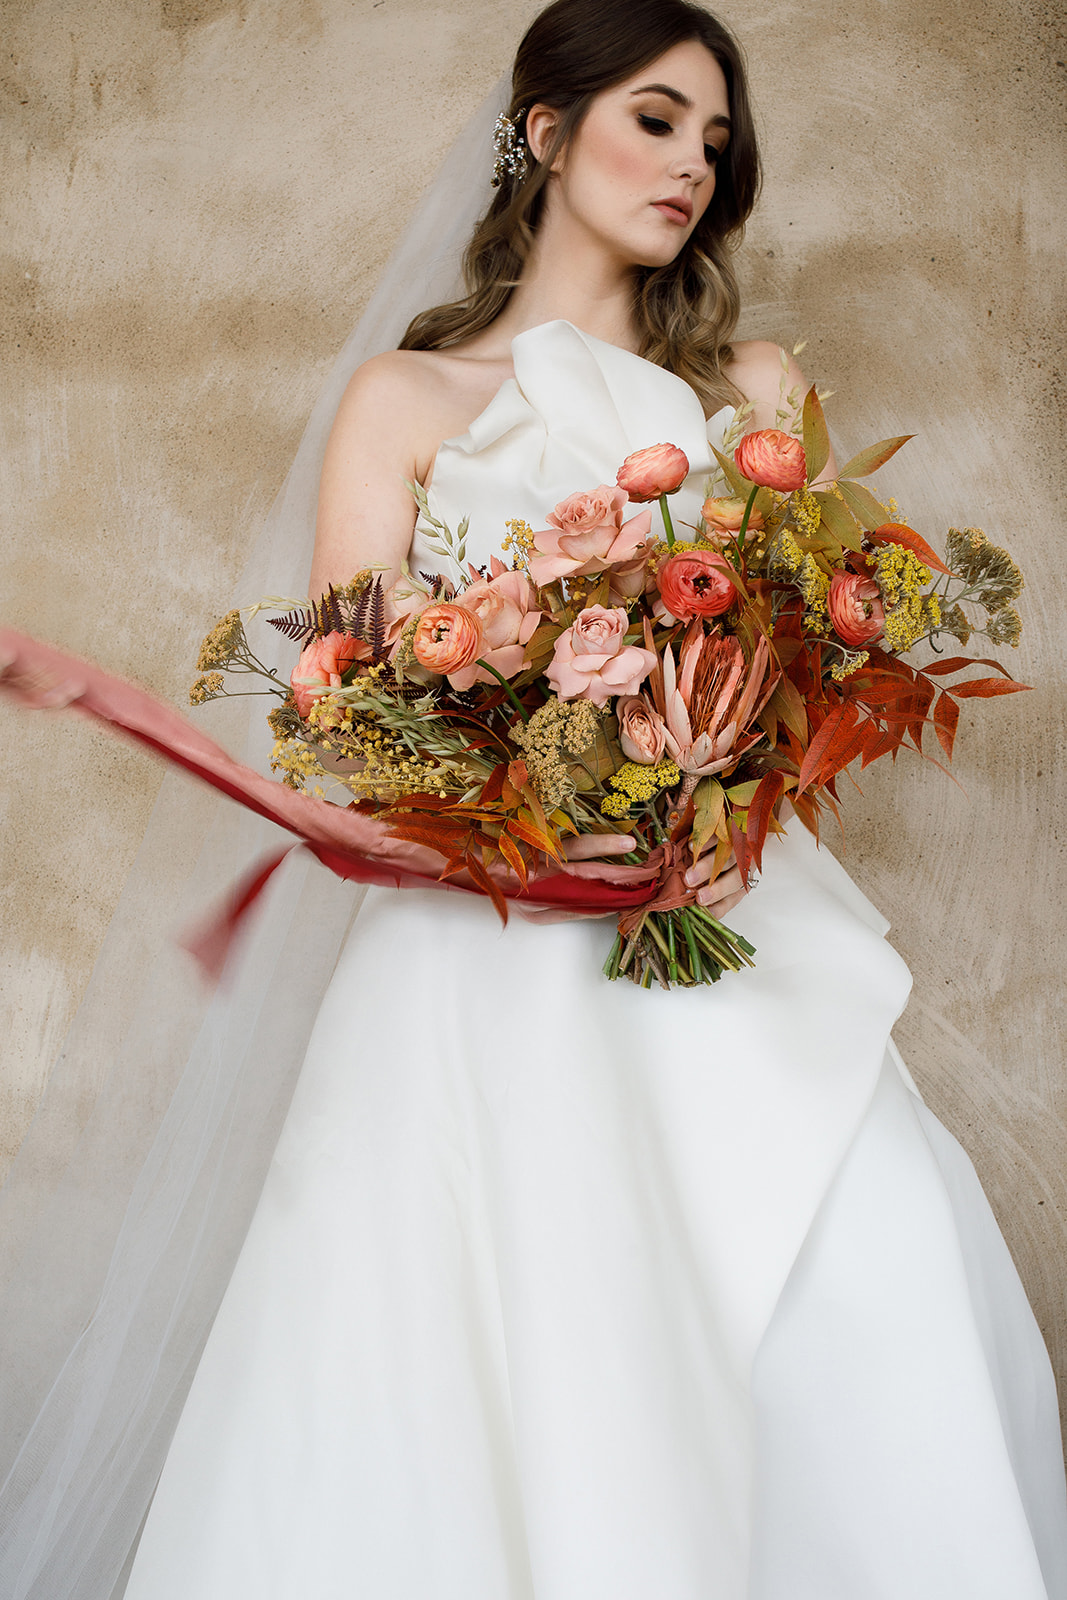 Warm & Luxurious Styled Shoot by Perfect Day Beauty featured on Nashville Bride Guide